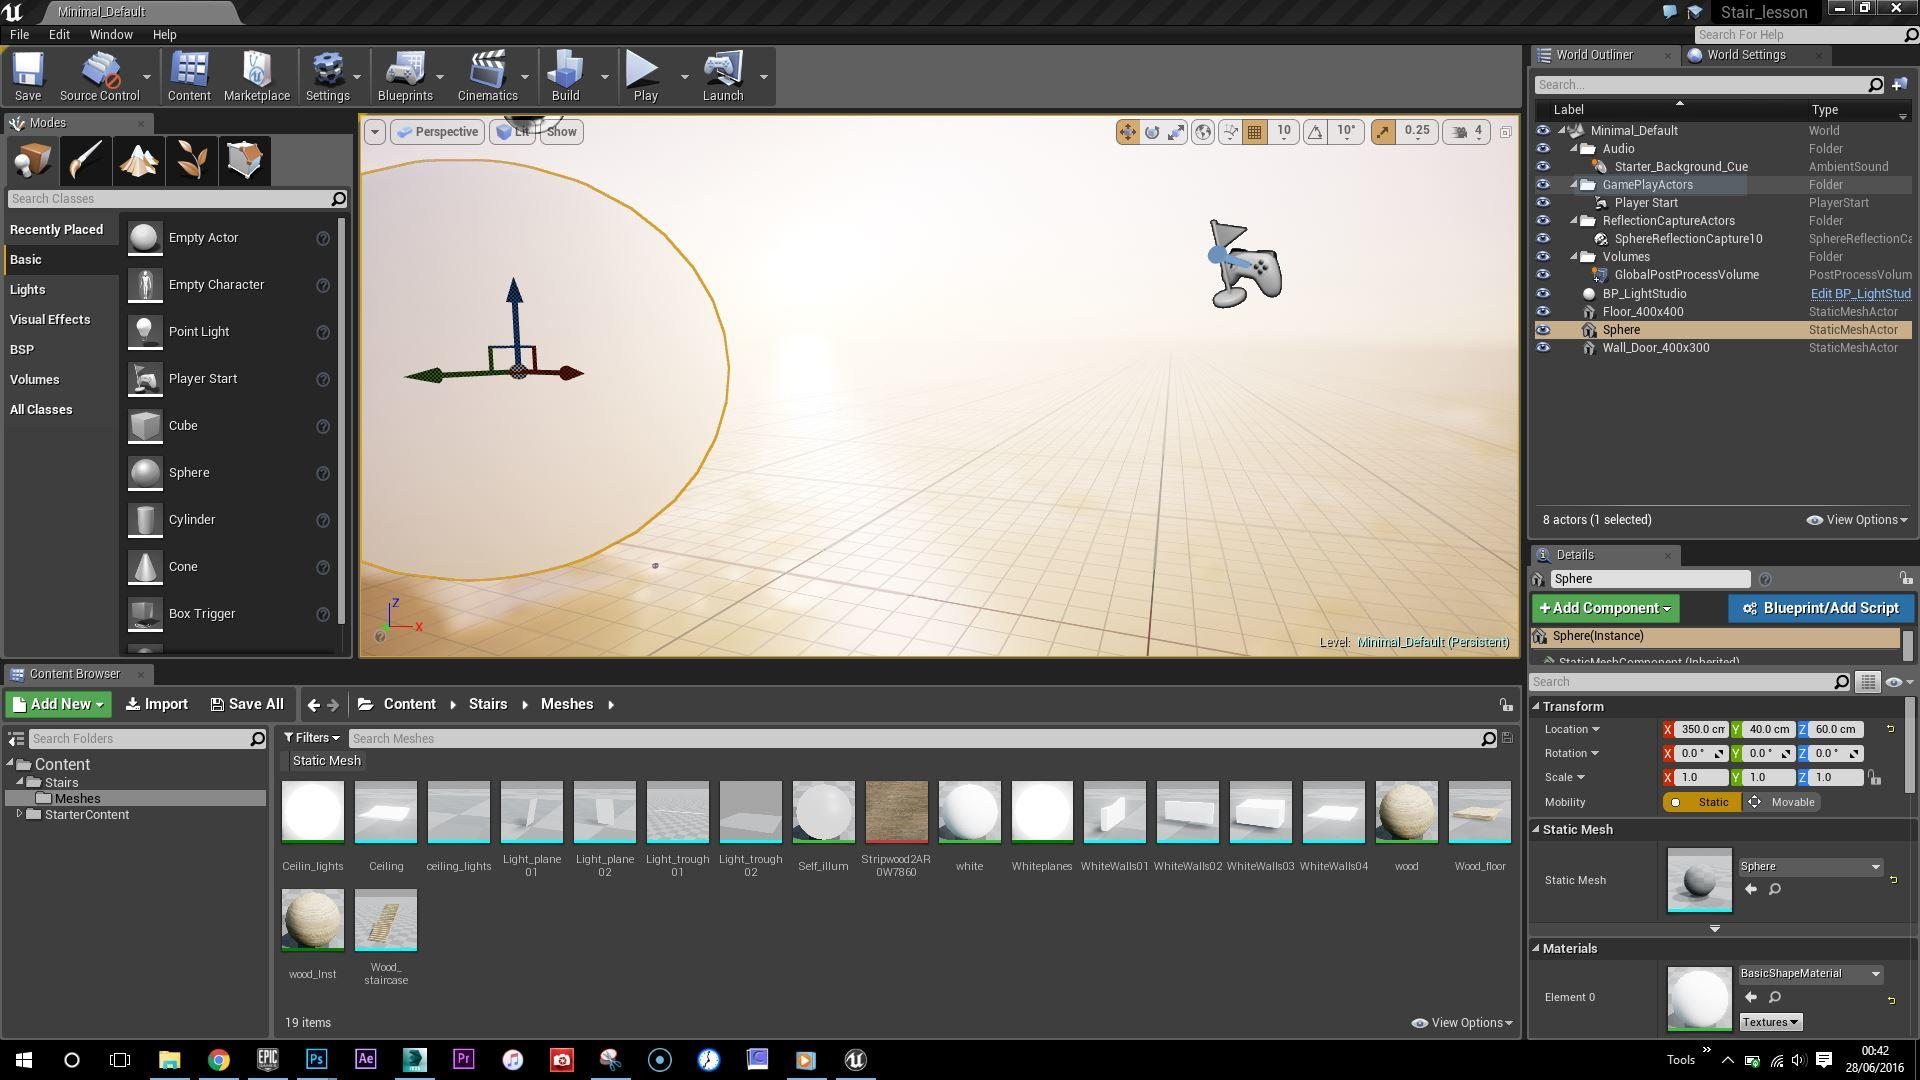 How to Use UE4 like a Pro